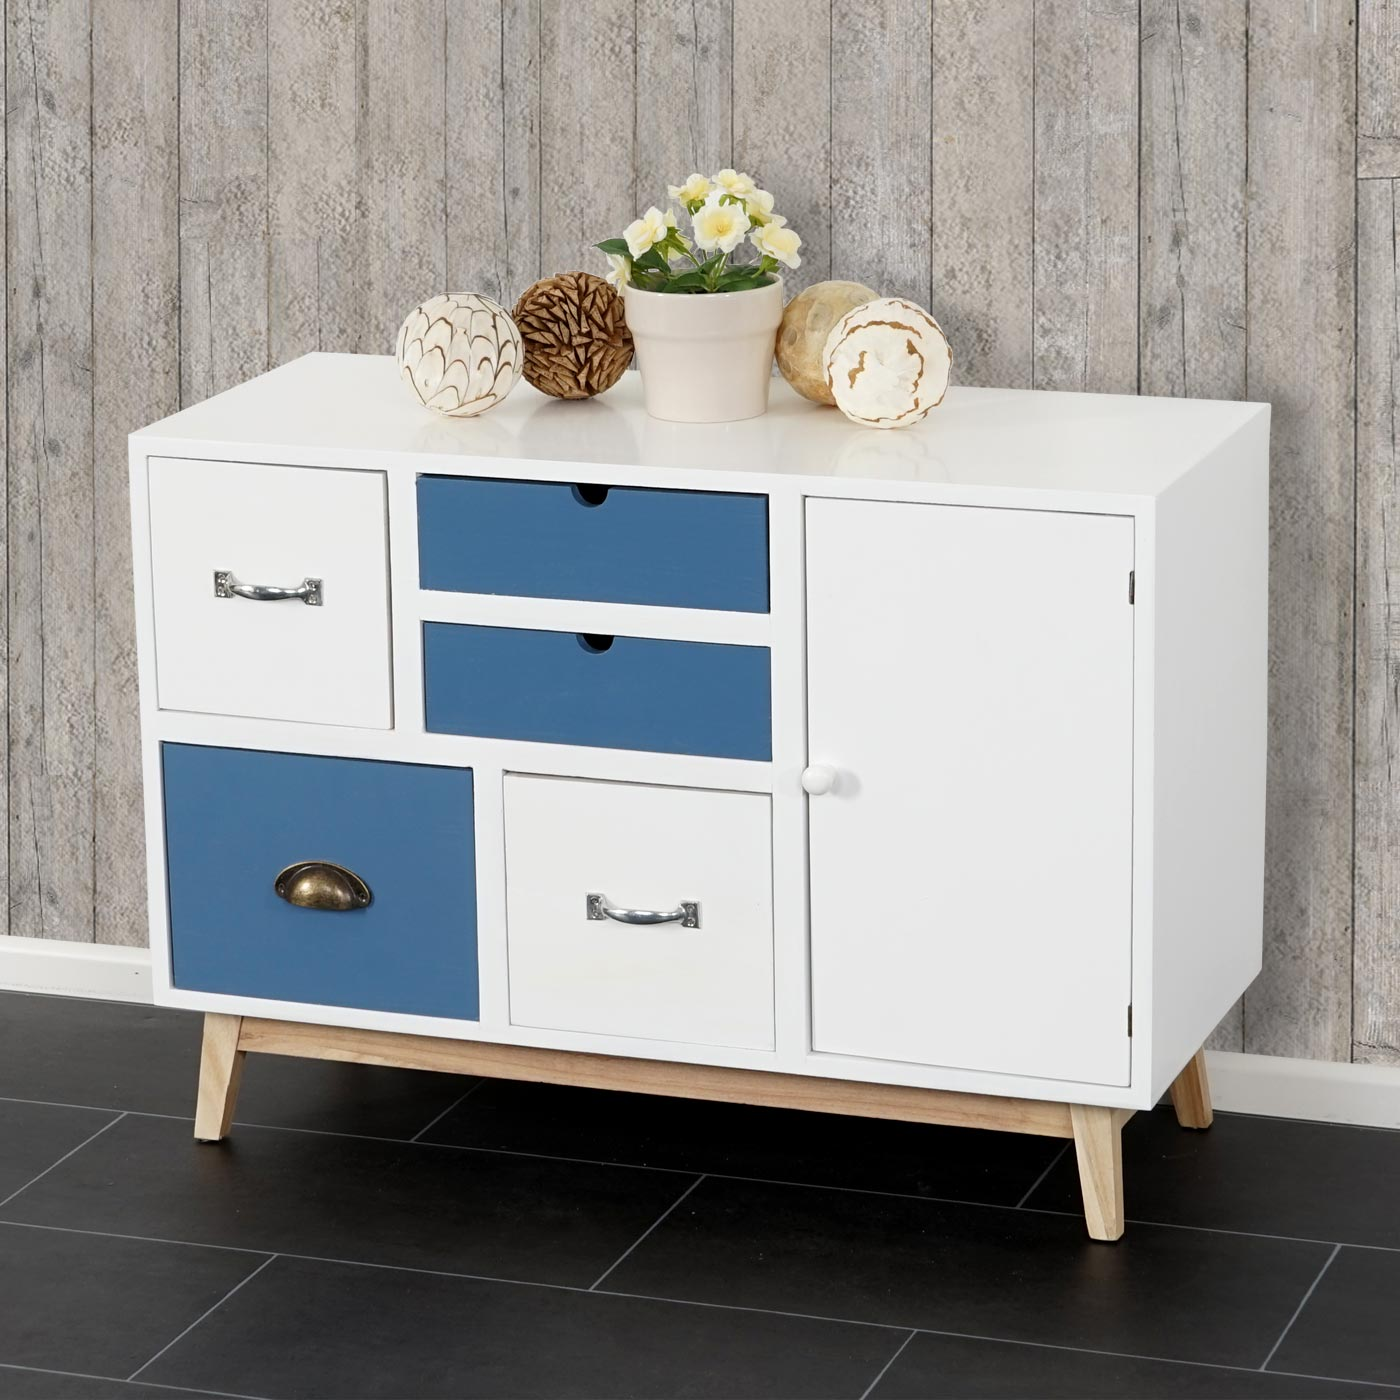 kommode malm t273 sideboard schubladenkommode schrank. Black Bedroom Furniture Sets. Home Design Ideas